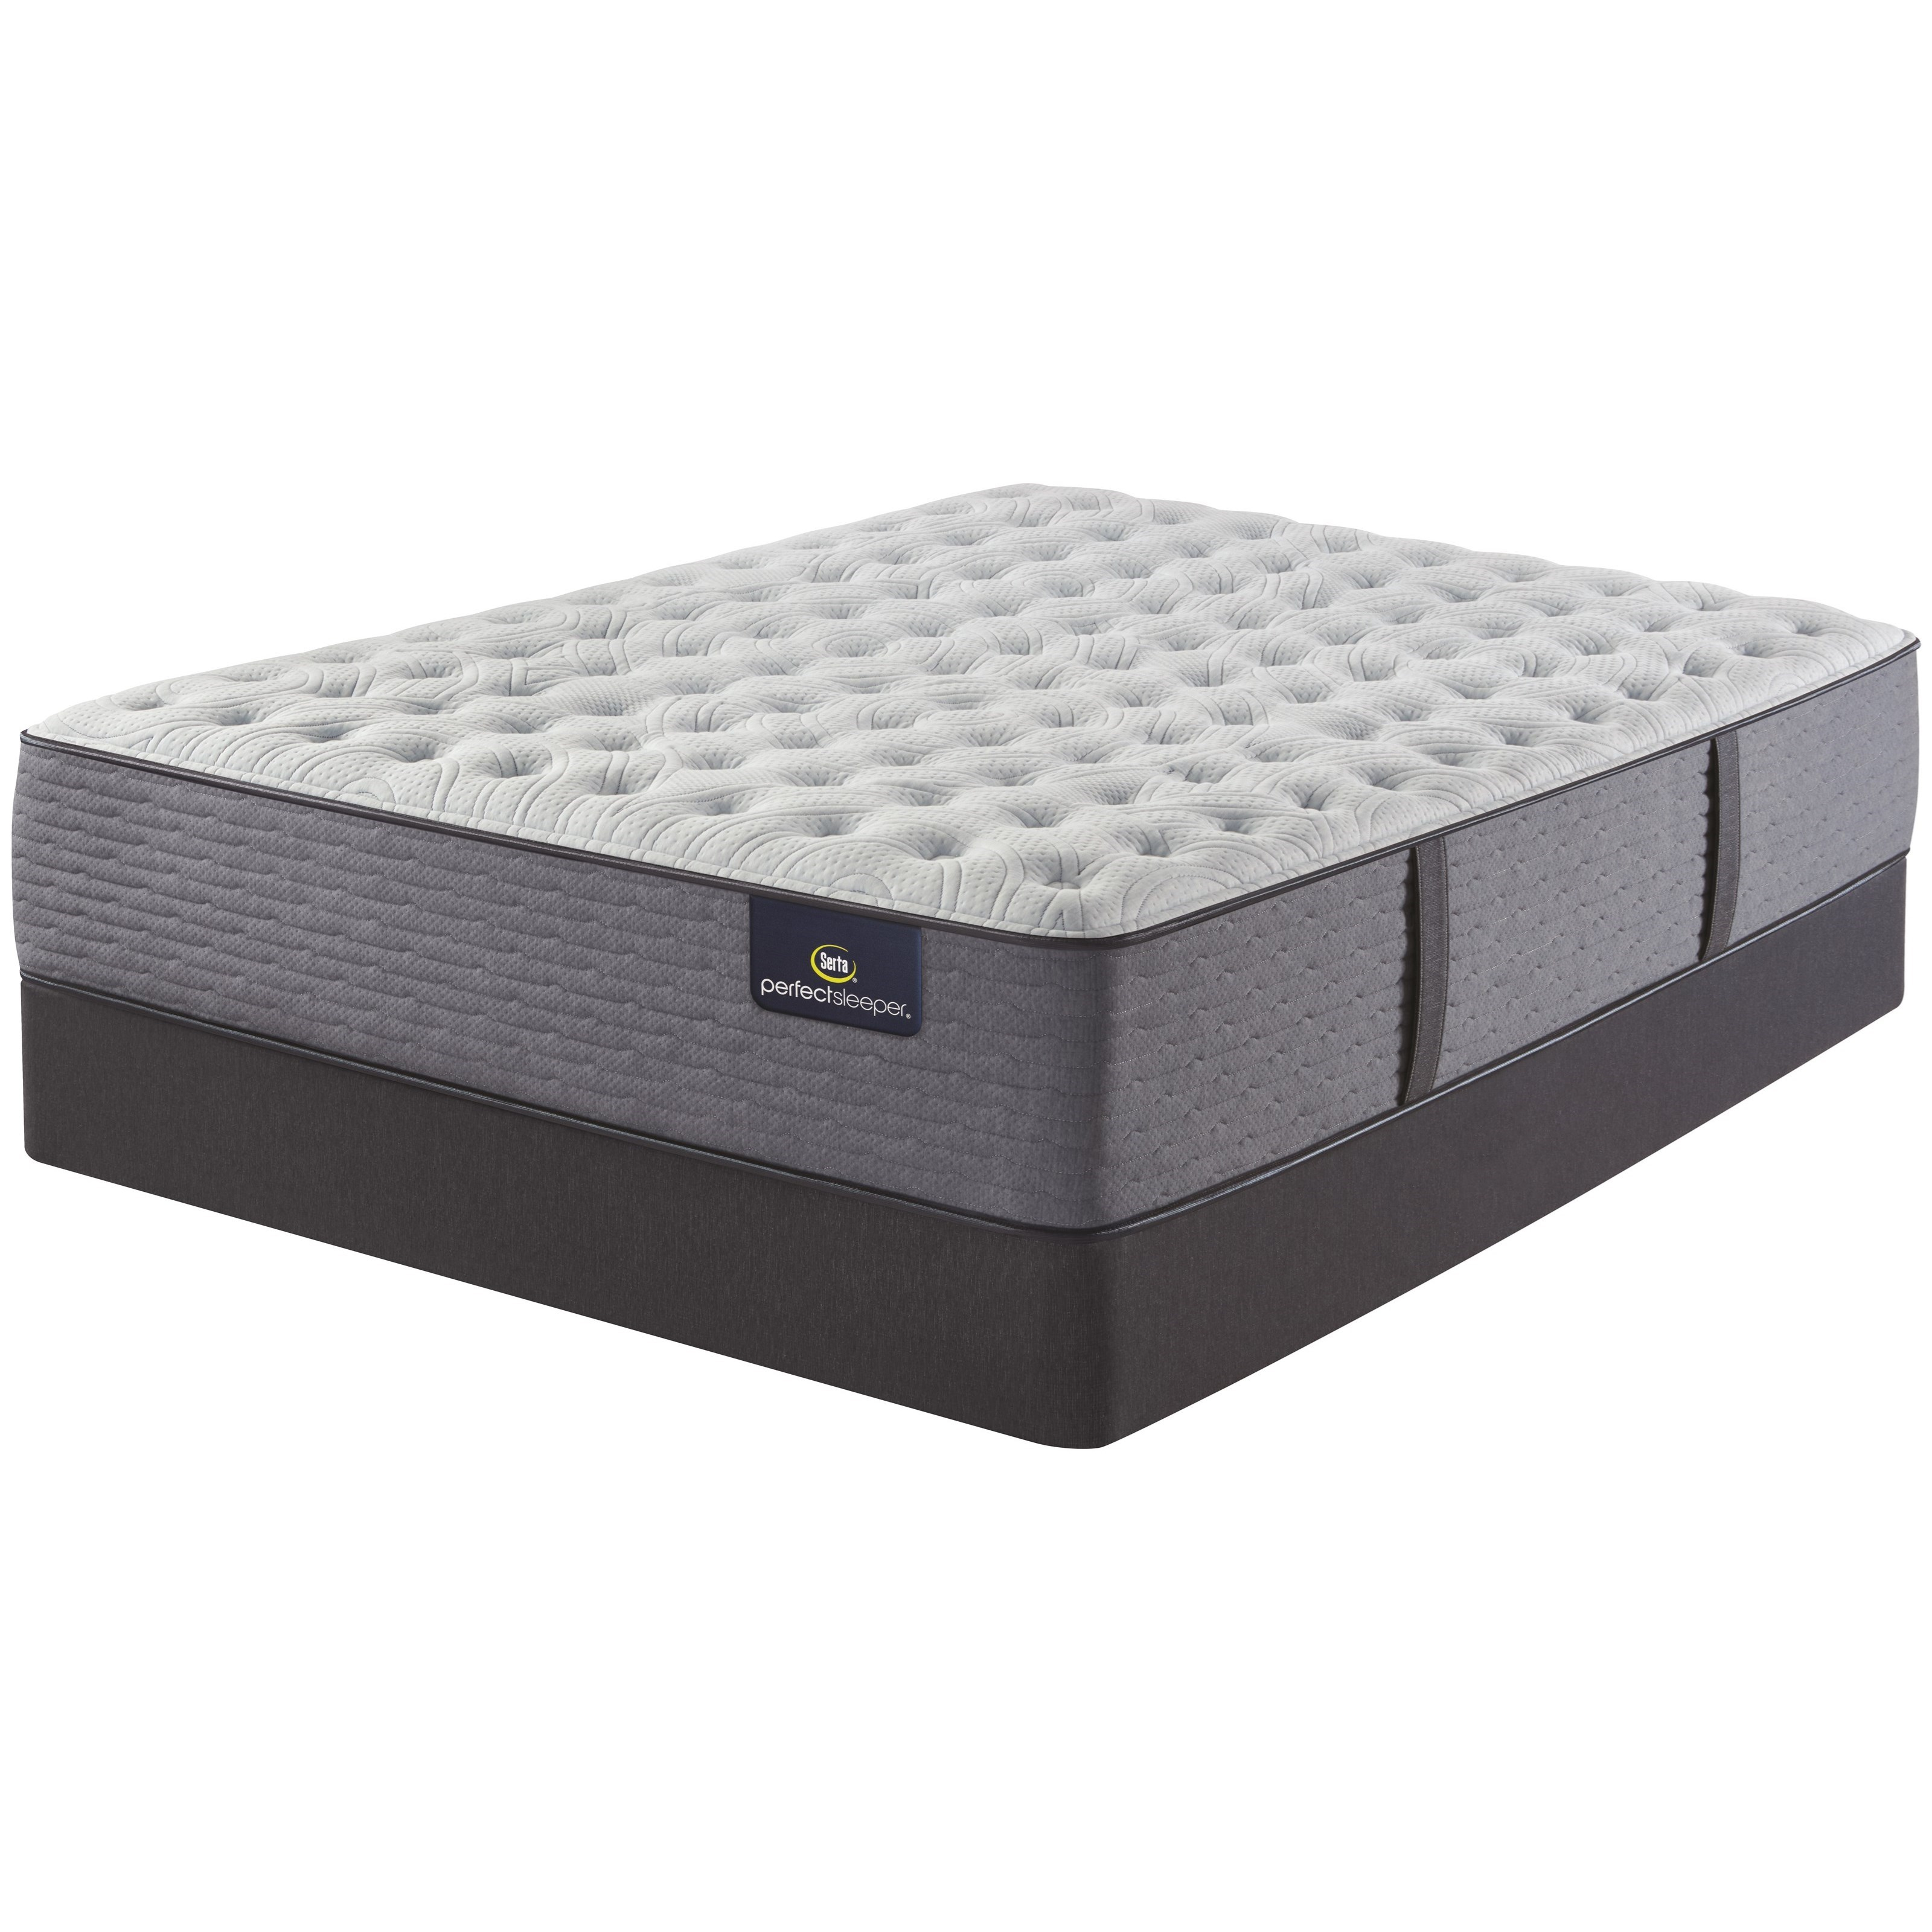 "Renewed Sleep Extra Firm Full 13 1/2"" Extra Firm Mattress Set by Serta at Darvin Furniture"